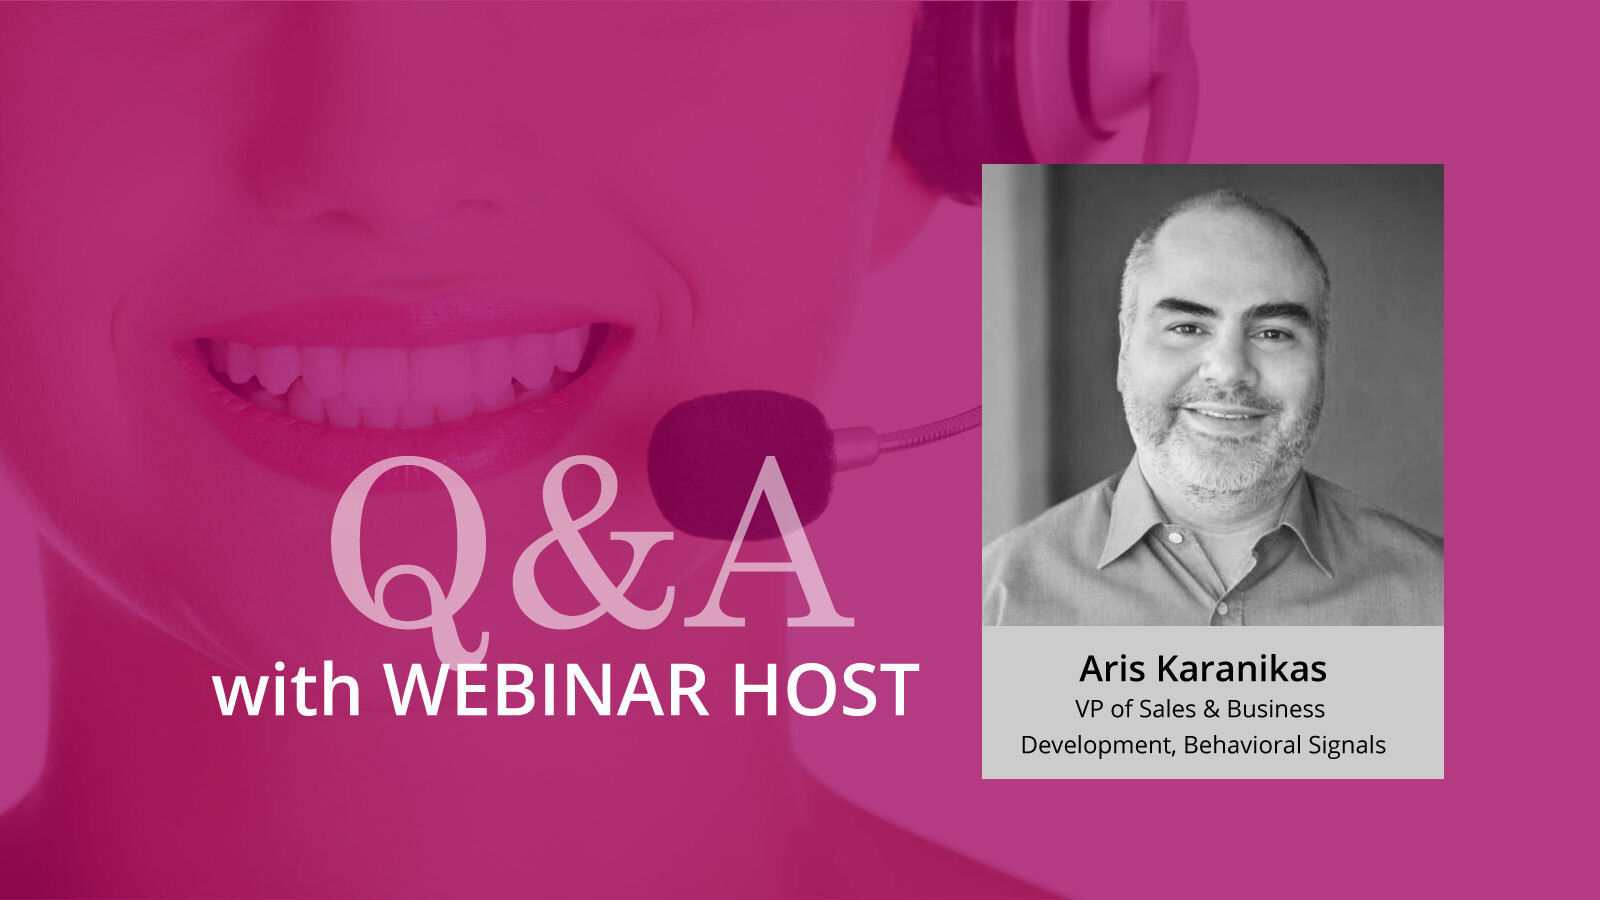 Aris_Karanikas_Webinar_Behavioral_AI_and_Debt_Restructuring